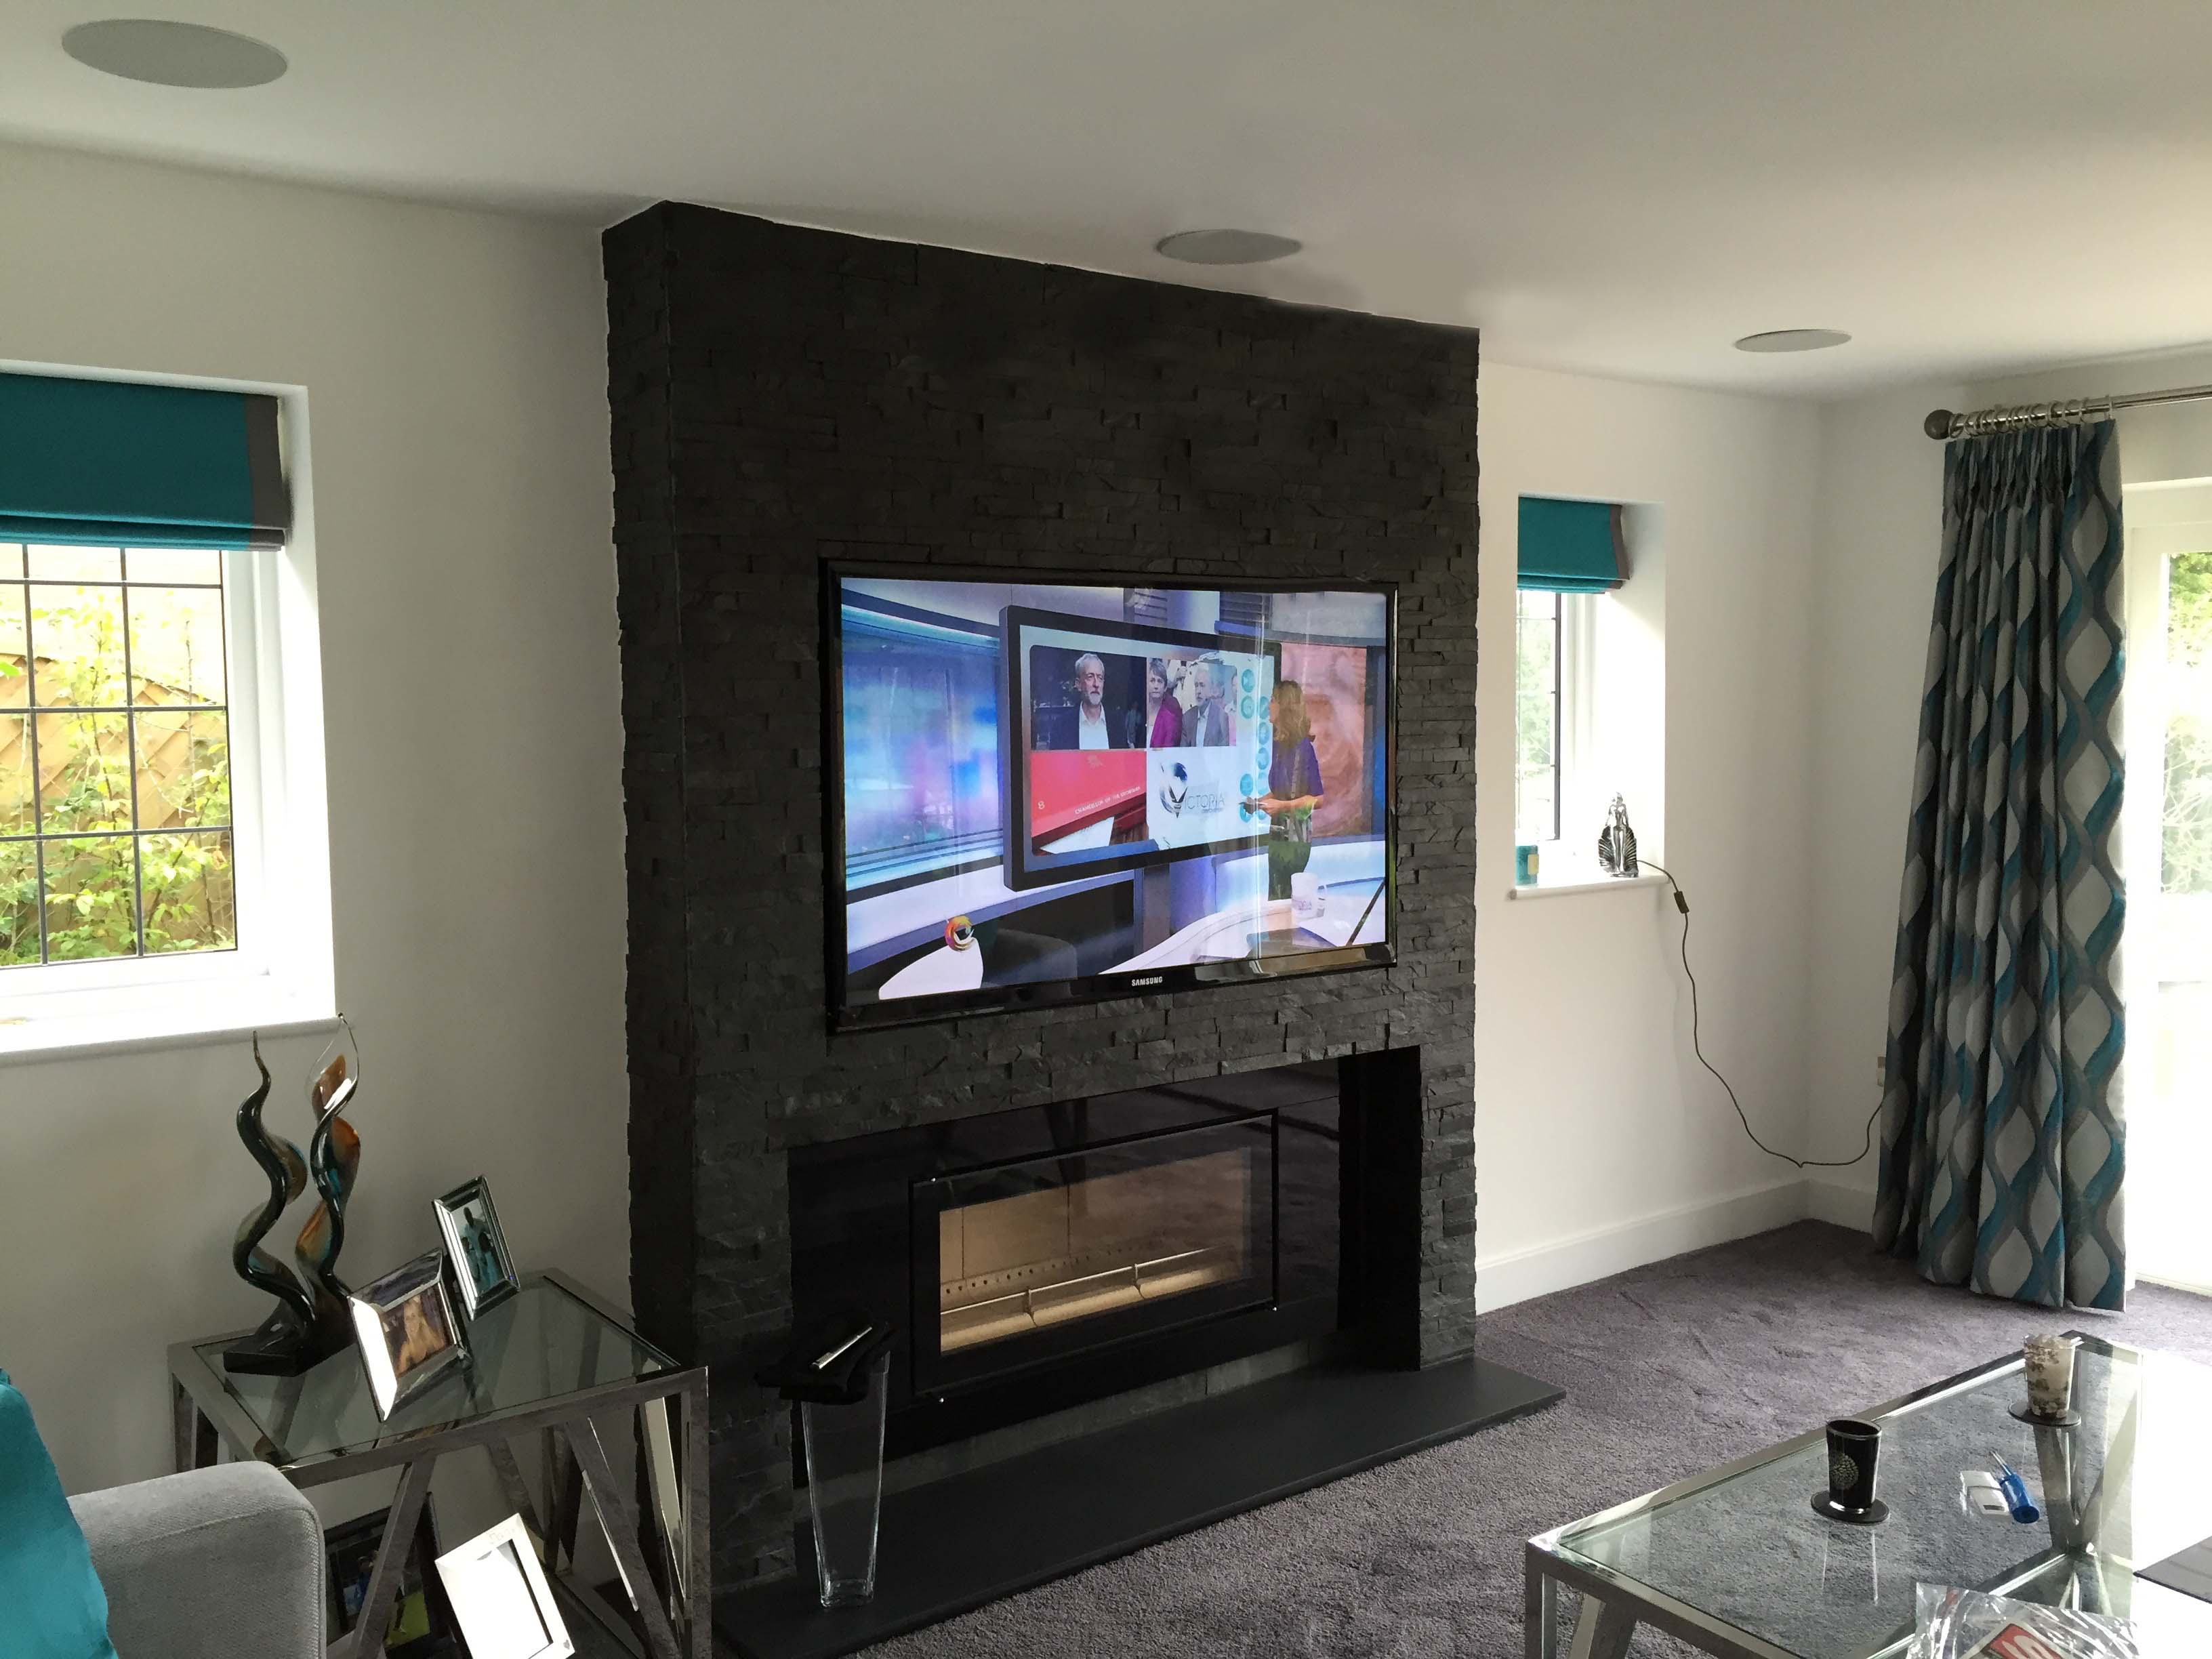 Audio Visual installation Hertfordshire new build house ...